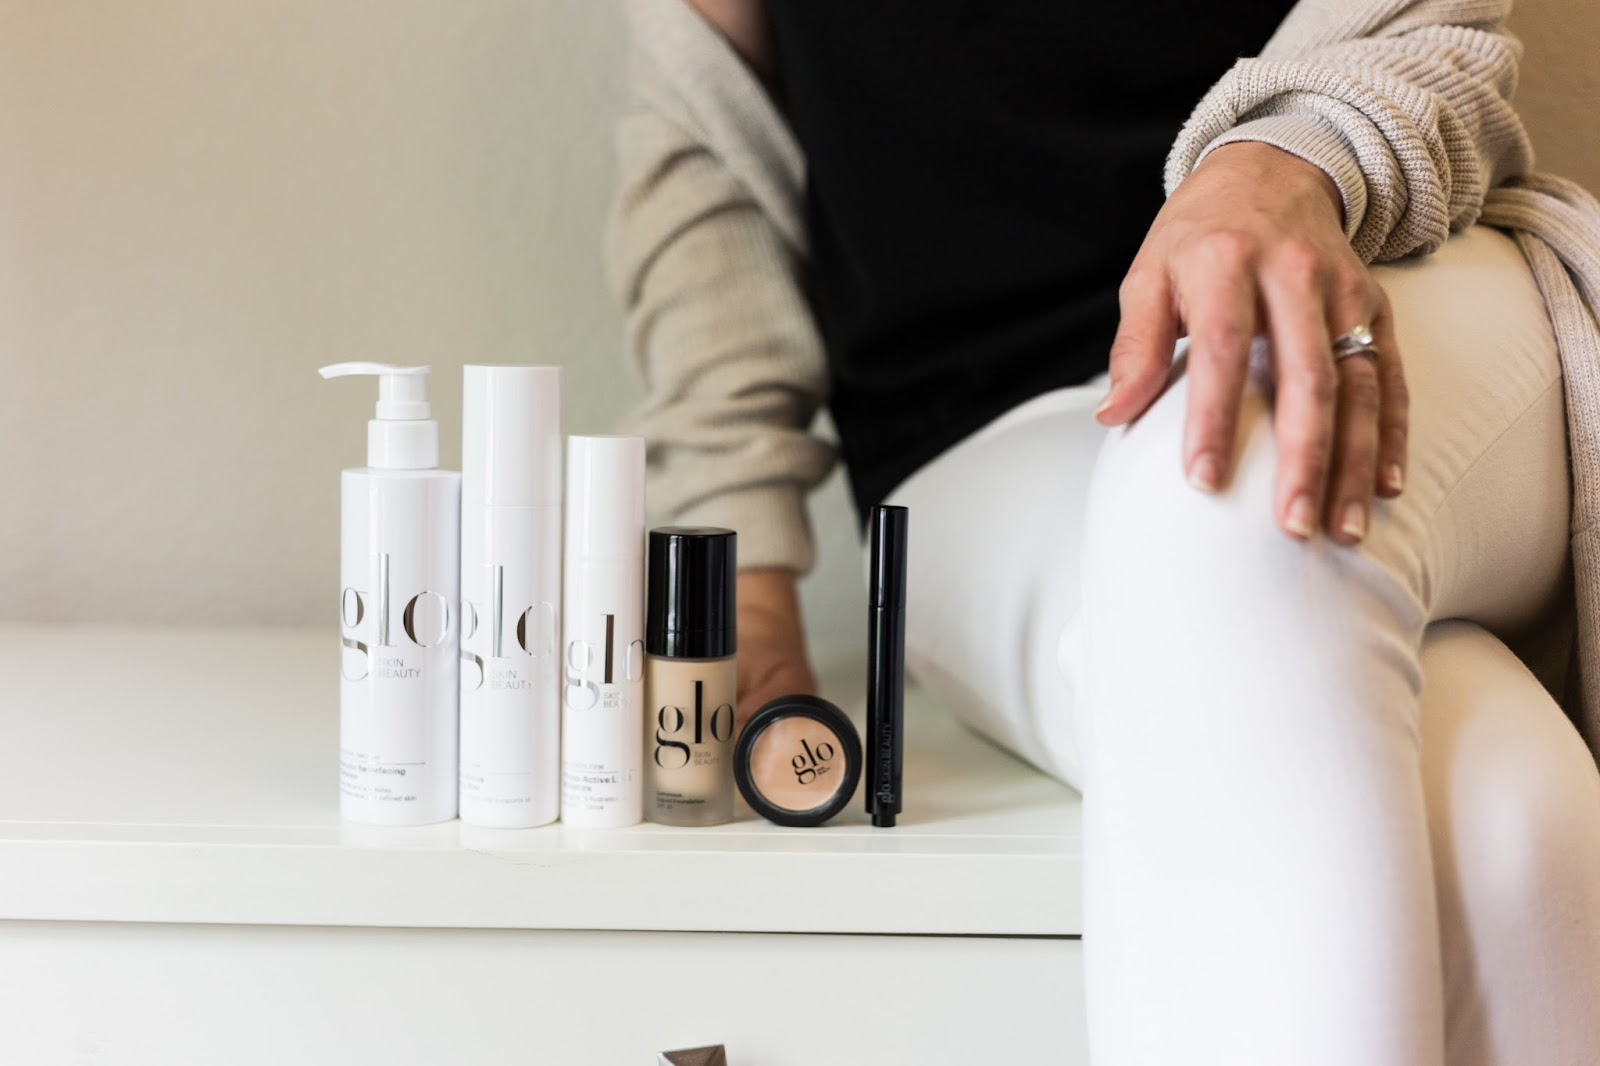 From Cleanser To Makeup, Glo Skin Beauty Is My Go To